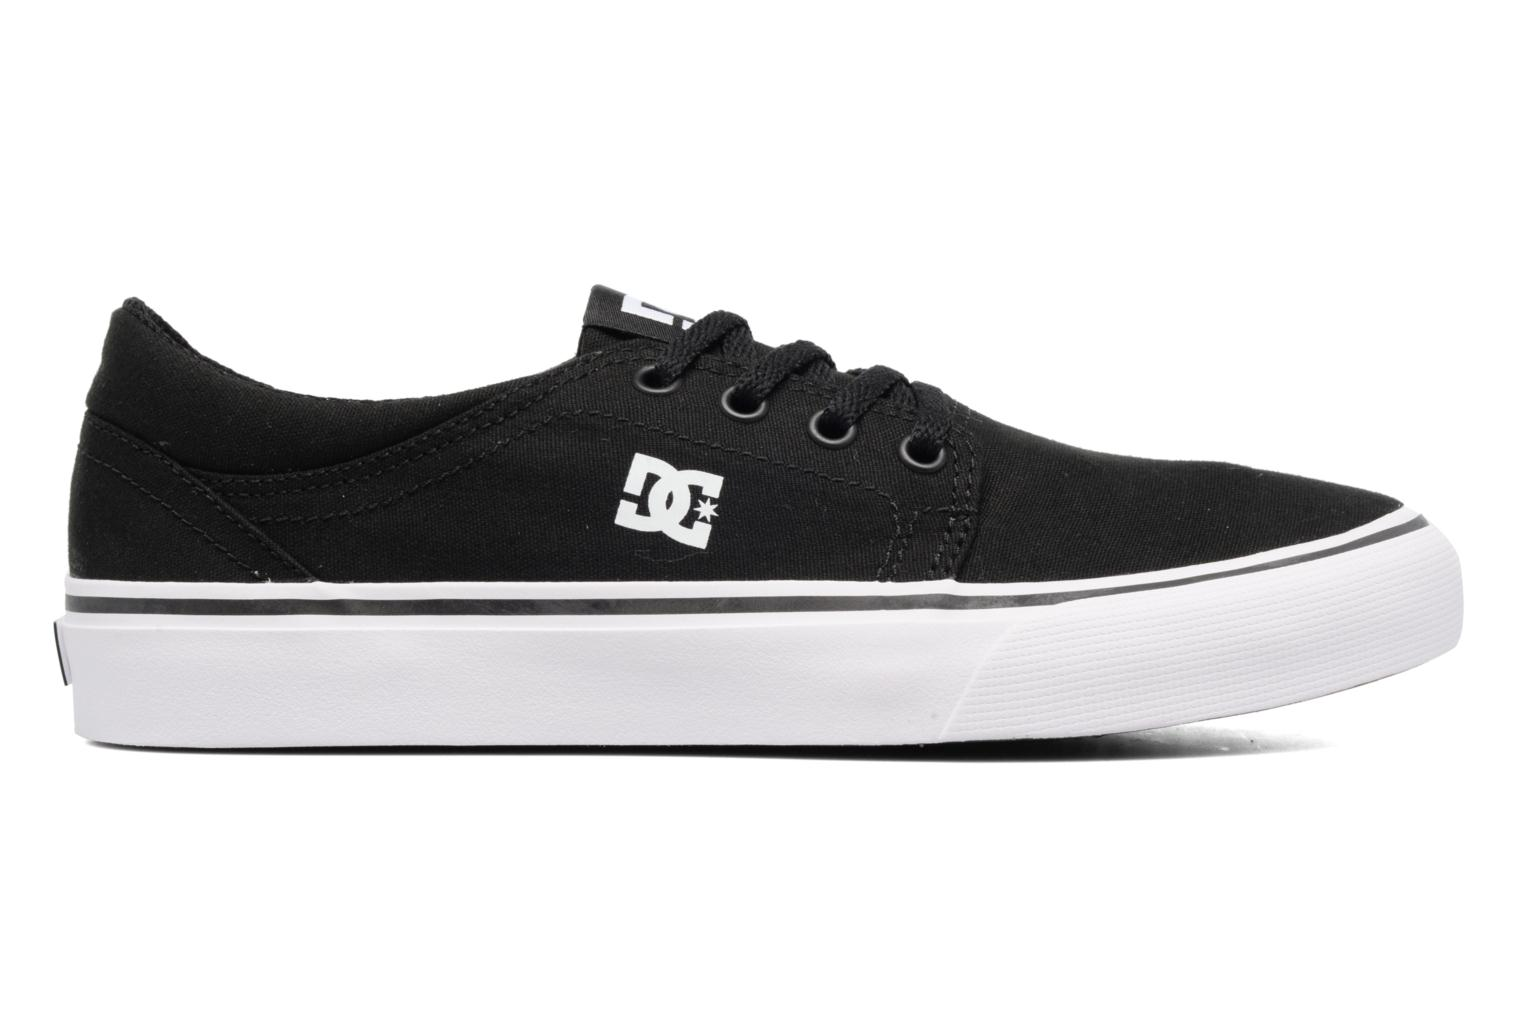 TRASE TX Kids Black / white